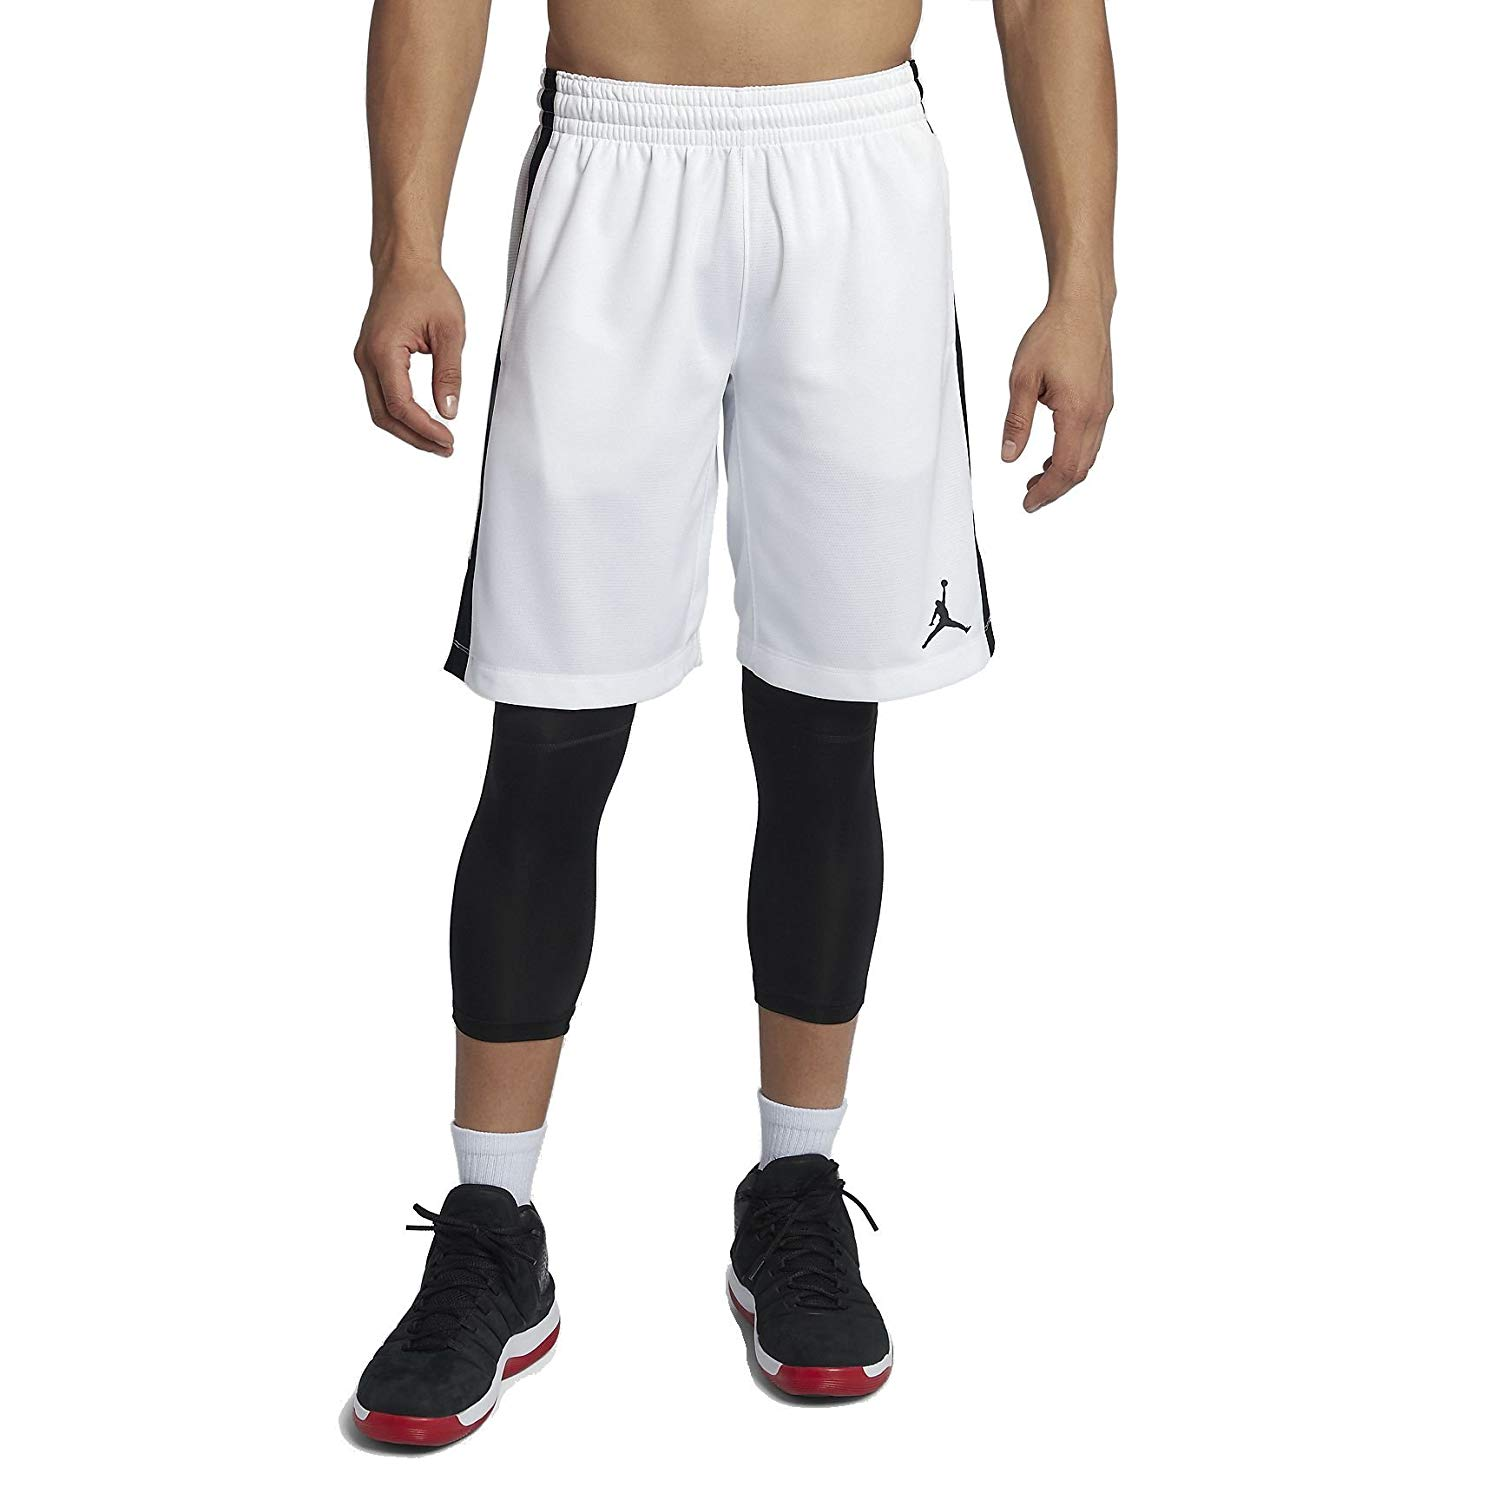 4088b938ac17 Get Quotations · Jordan Flight Men s Basketball Shorts (White Black